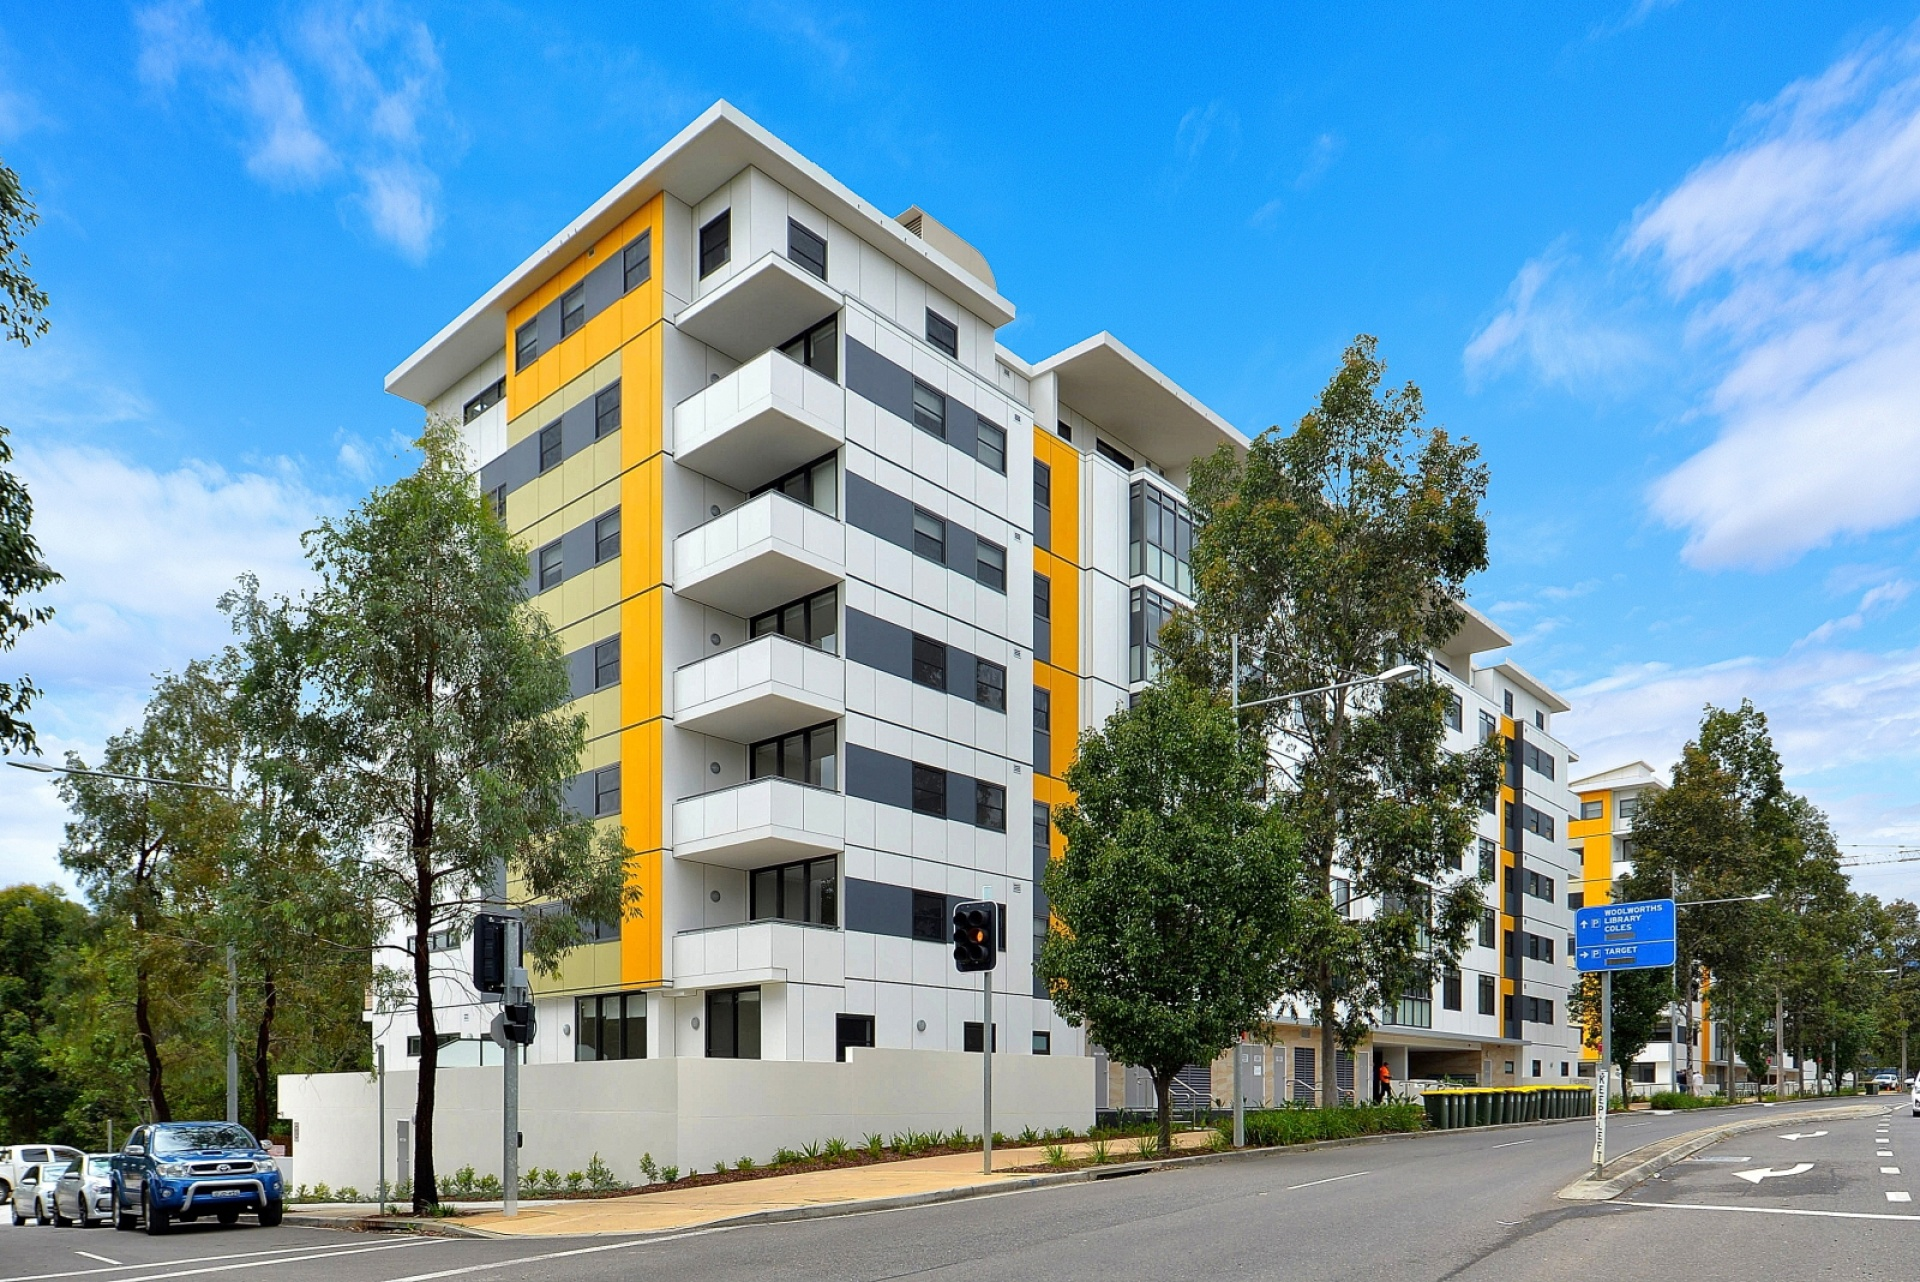 2 Bedrooms, Apartment, Sold , Caddies Boulevarde, 2 Bathrooms, Listing ID 1142, Rouse Hill, NSW, Australia,